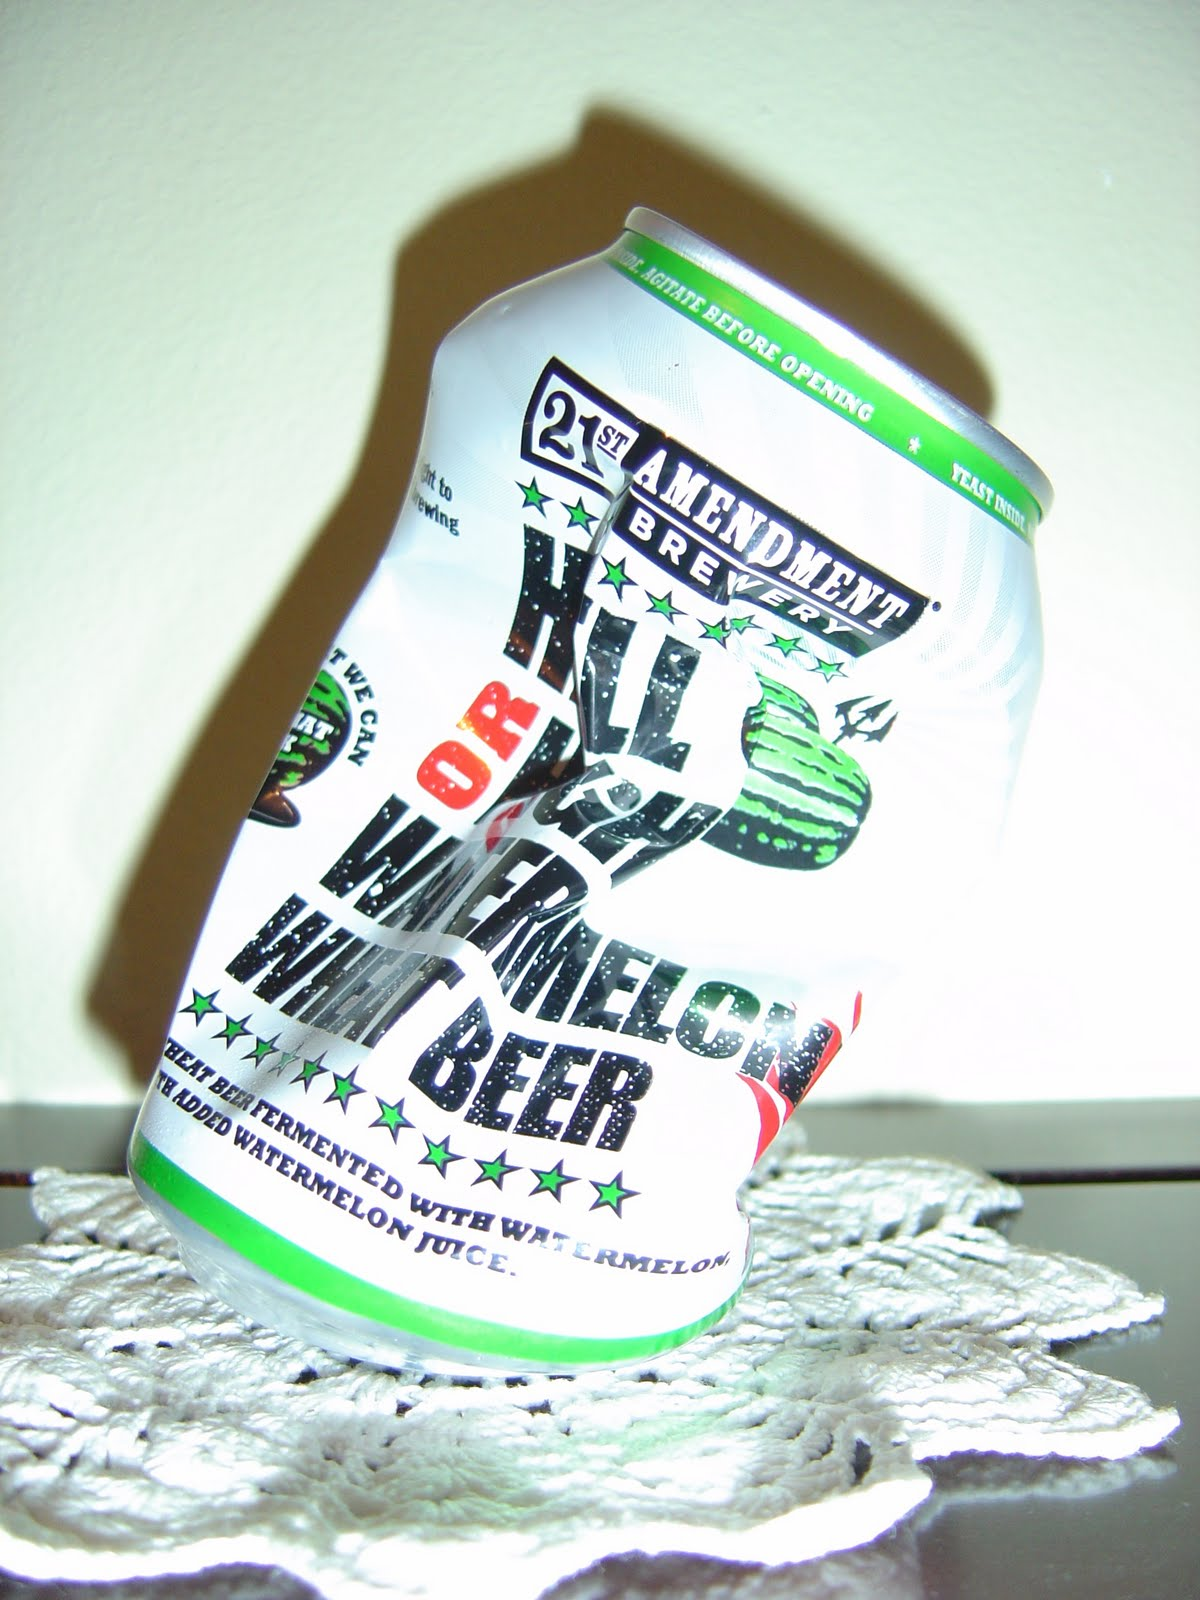 Daily Beer Review: Hell or